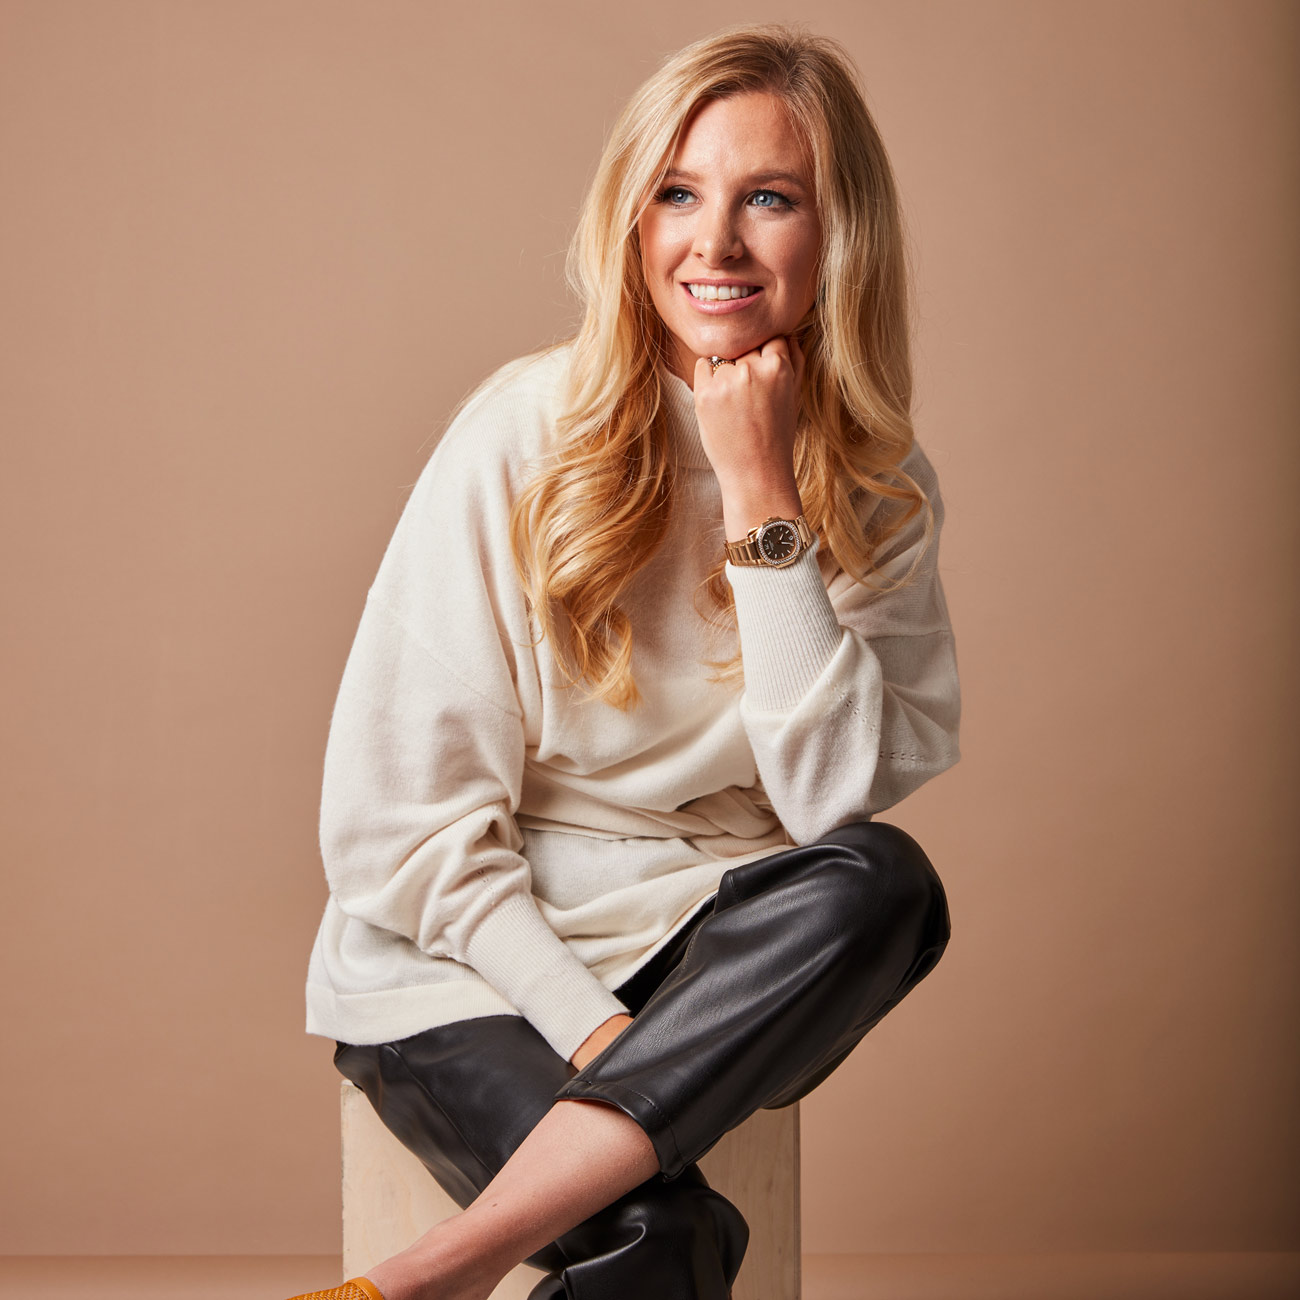 The Ordinary CEO and co-founder Nicola Kilner